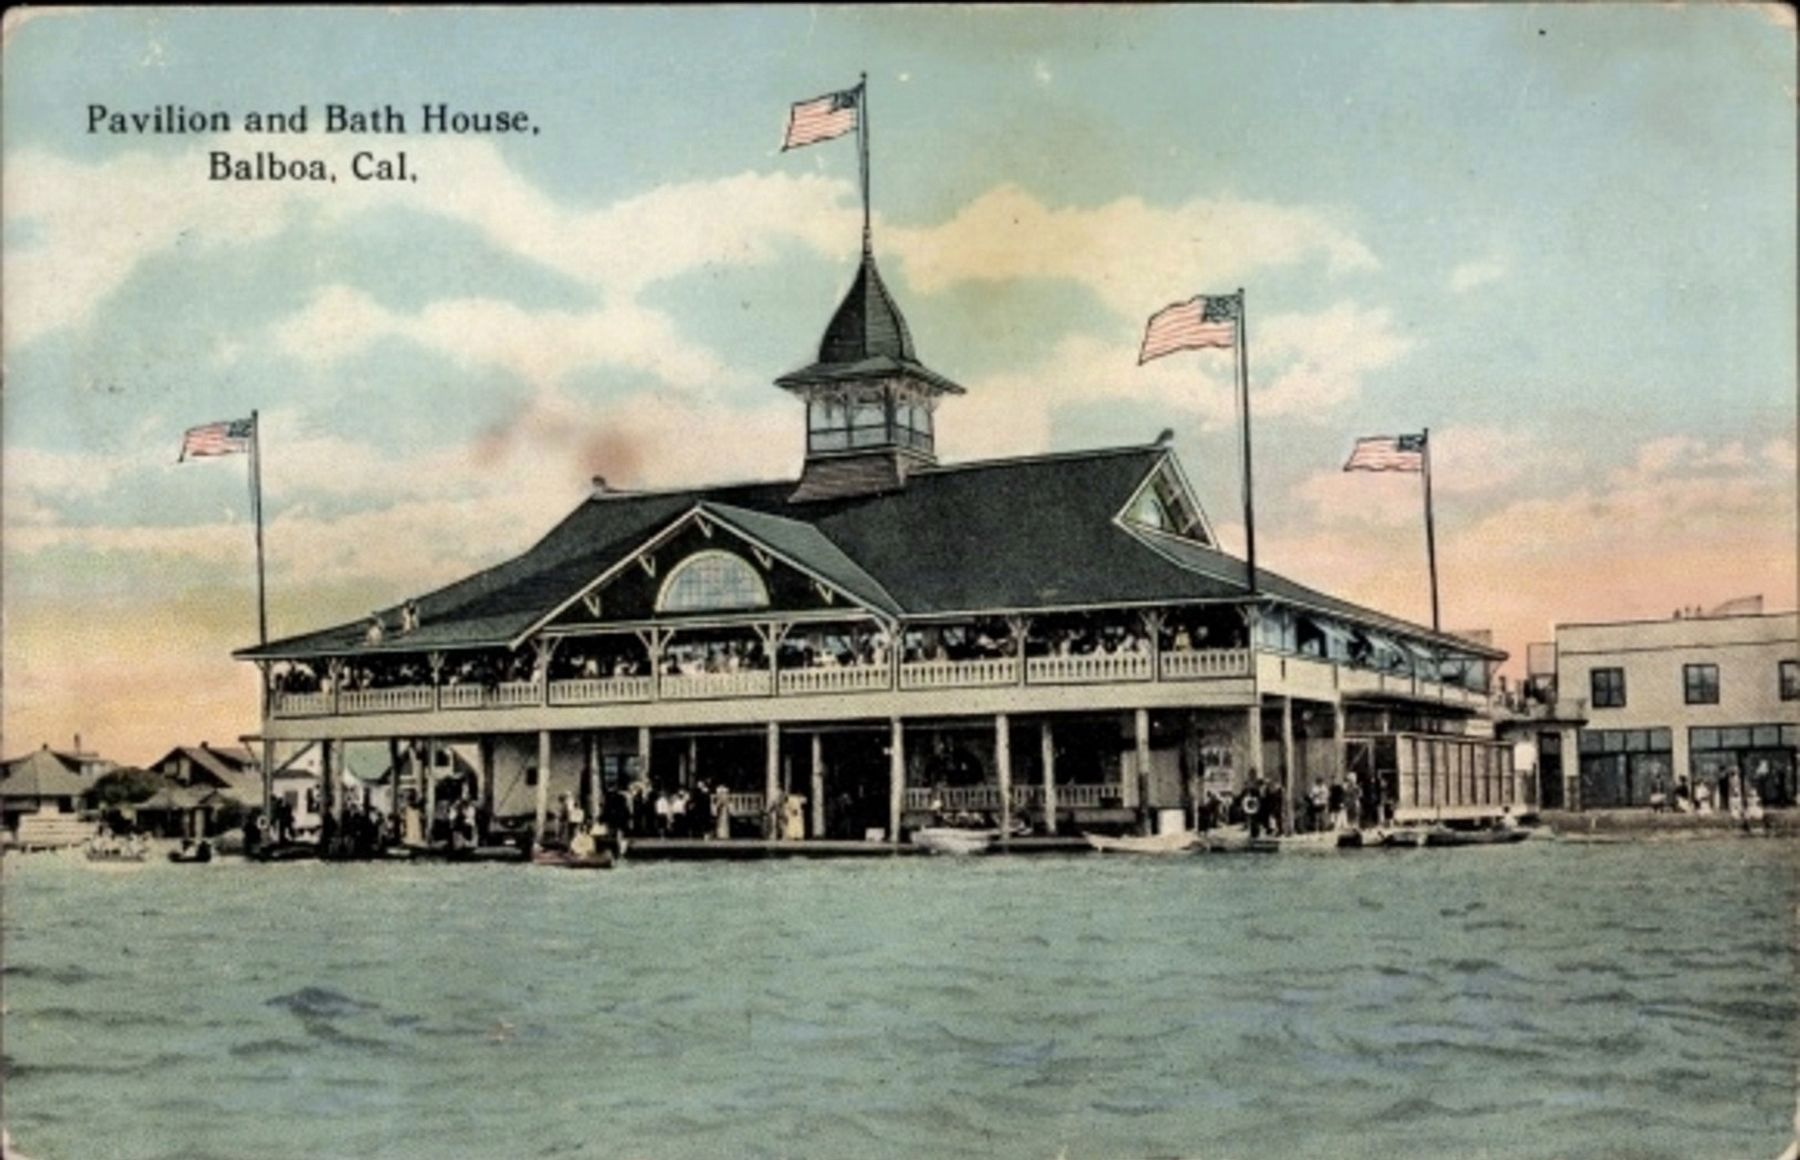 <i>Pavilion and Bath House, Balboa, Cal.</i> image, Touch for more information